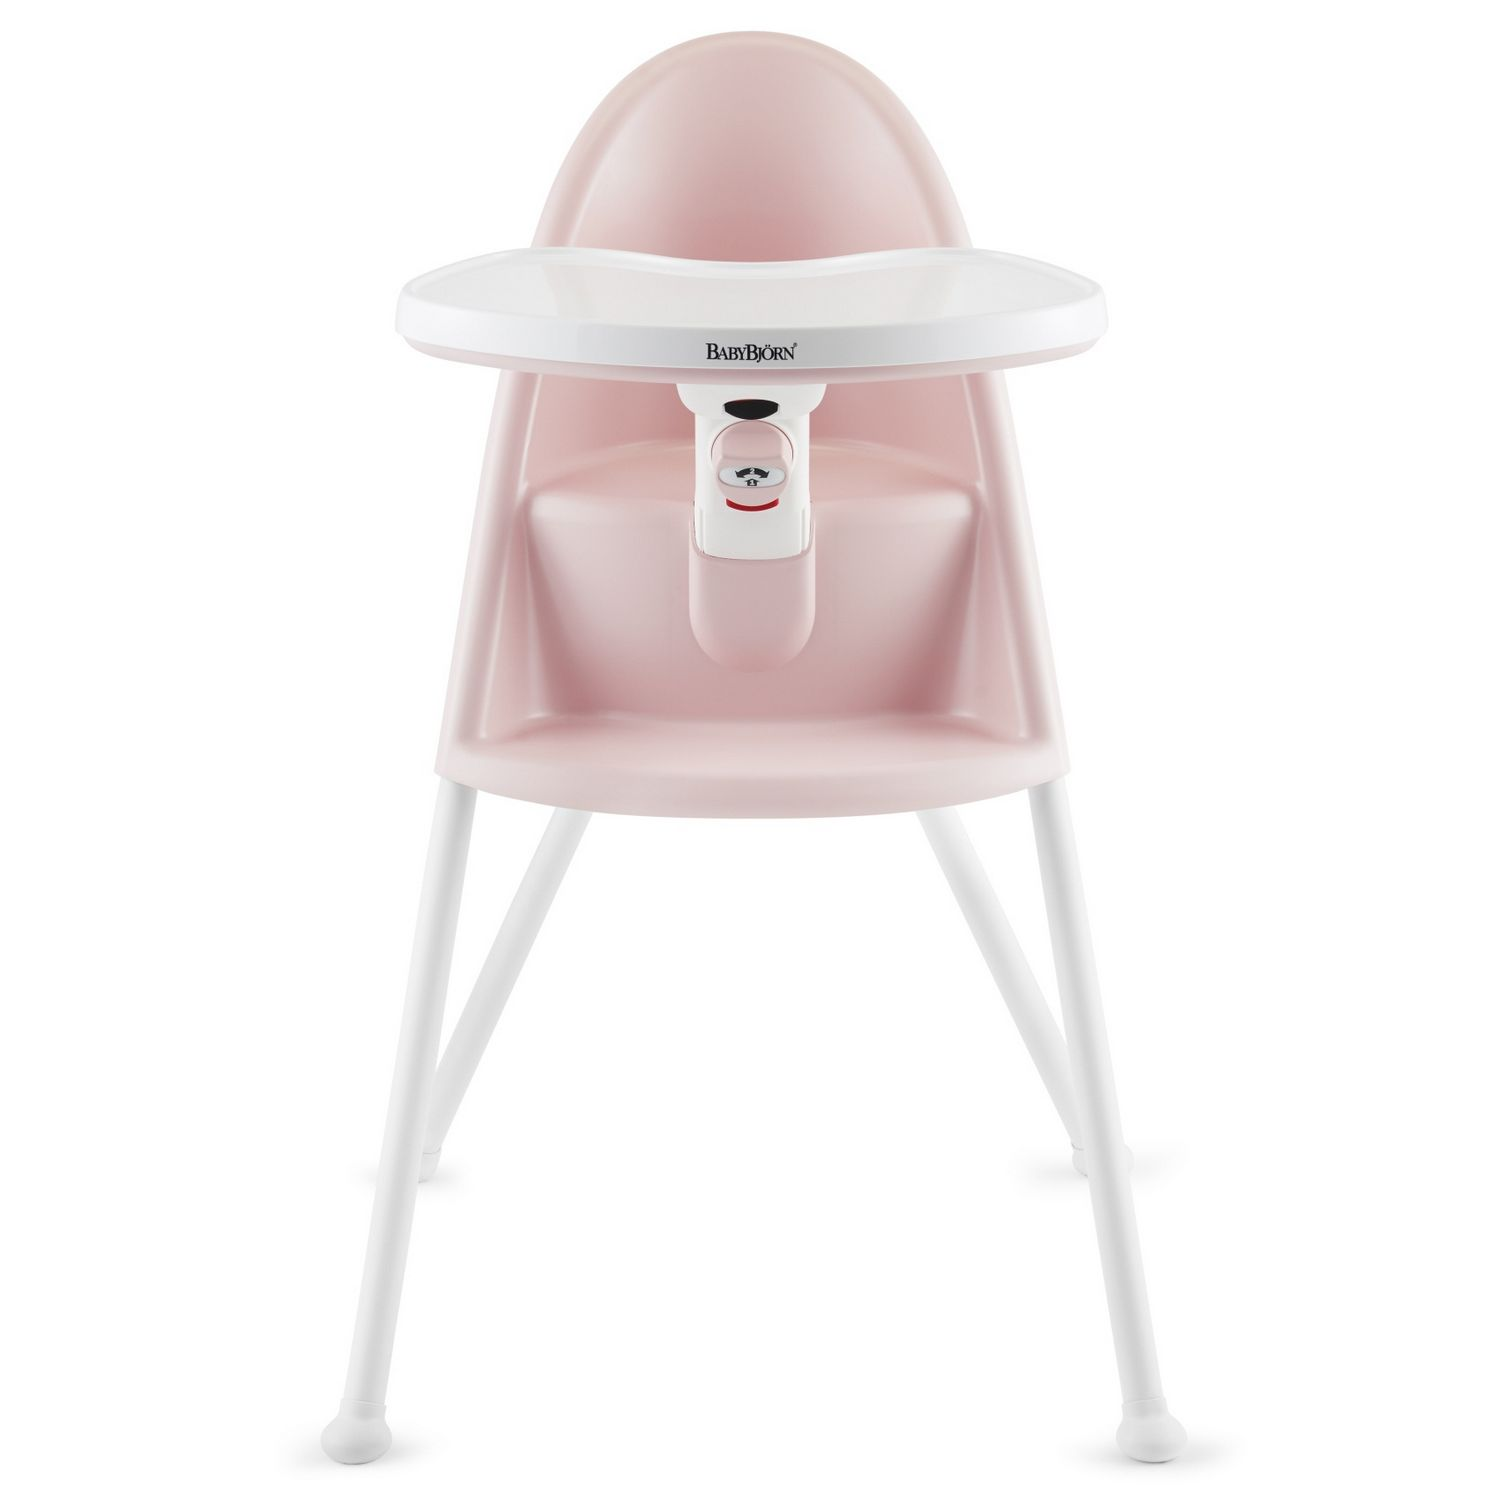 BabyBjorn High Chair by BabyBj%C3%B6rn